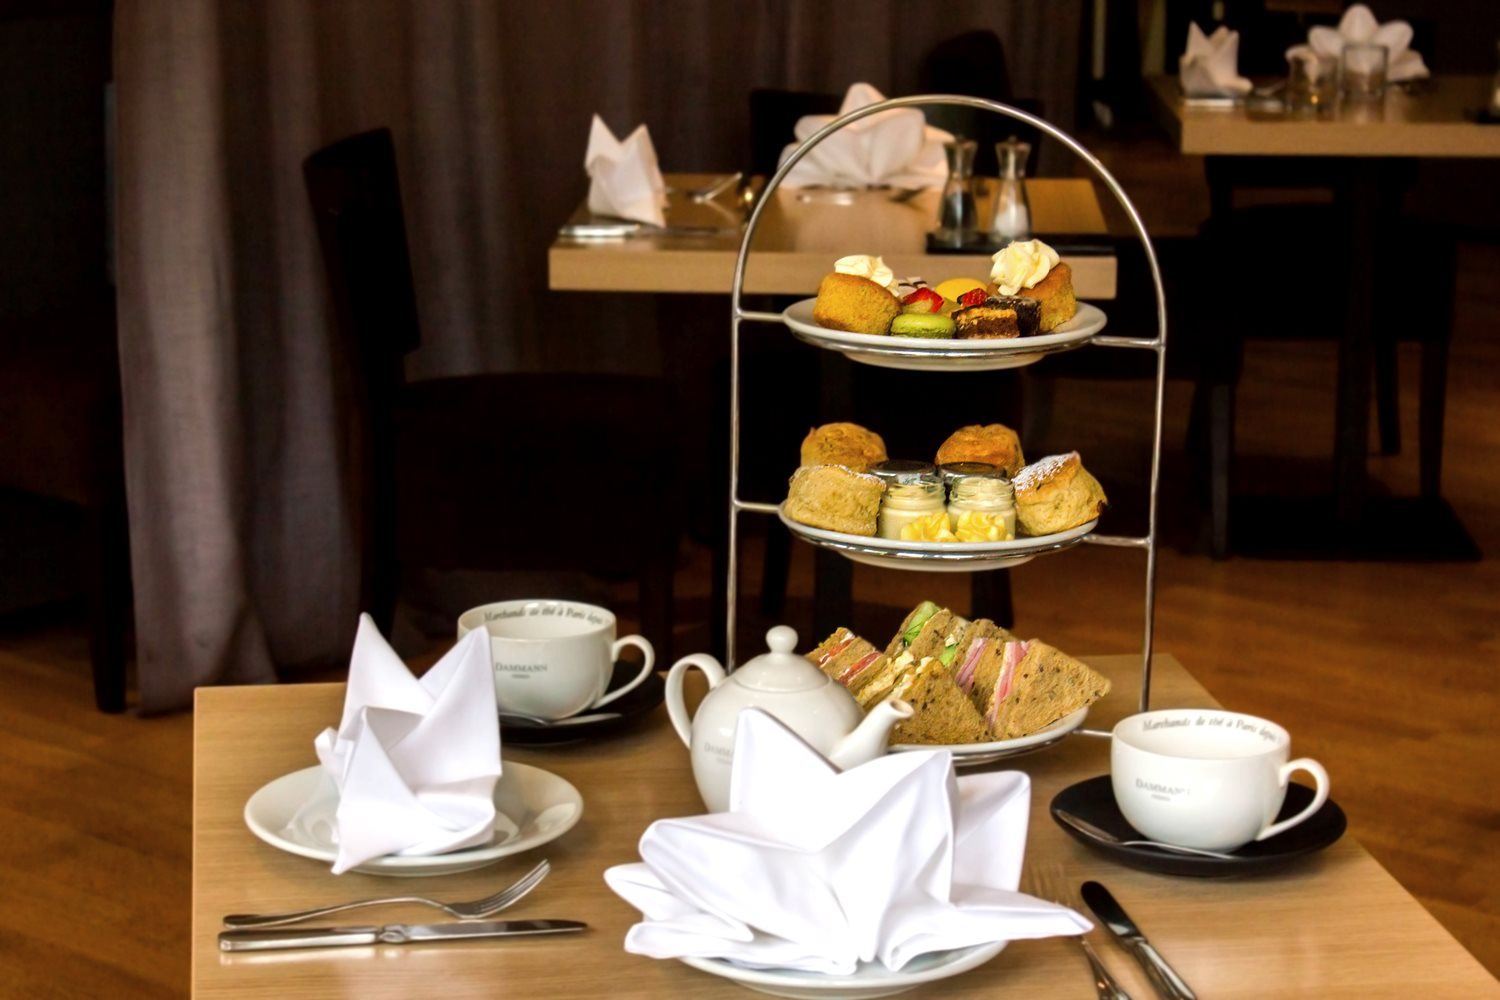 Enjoy a selection of freshly prepared sandwiches, scones and pastries.